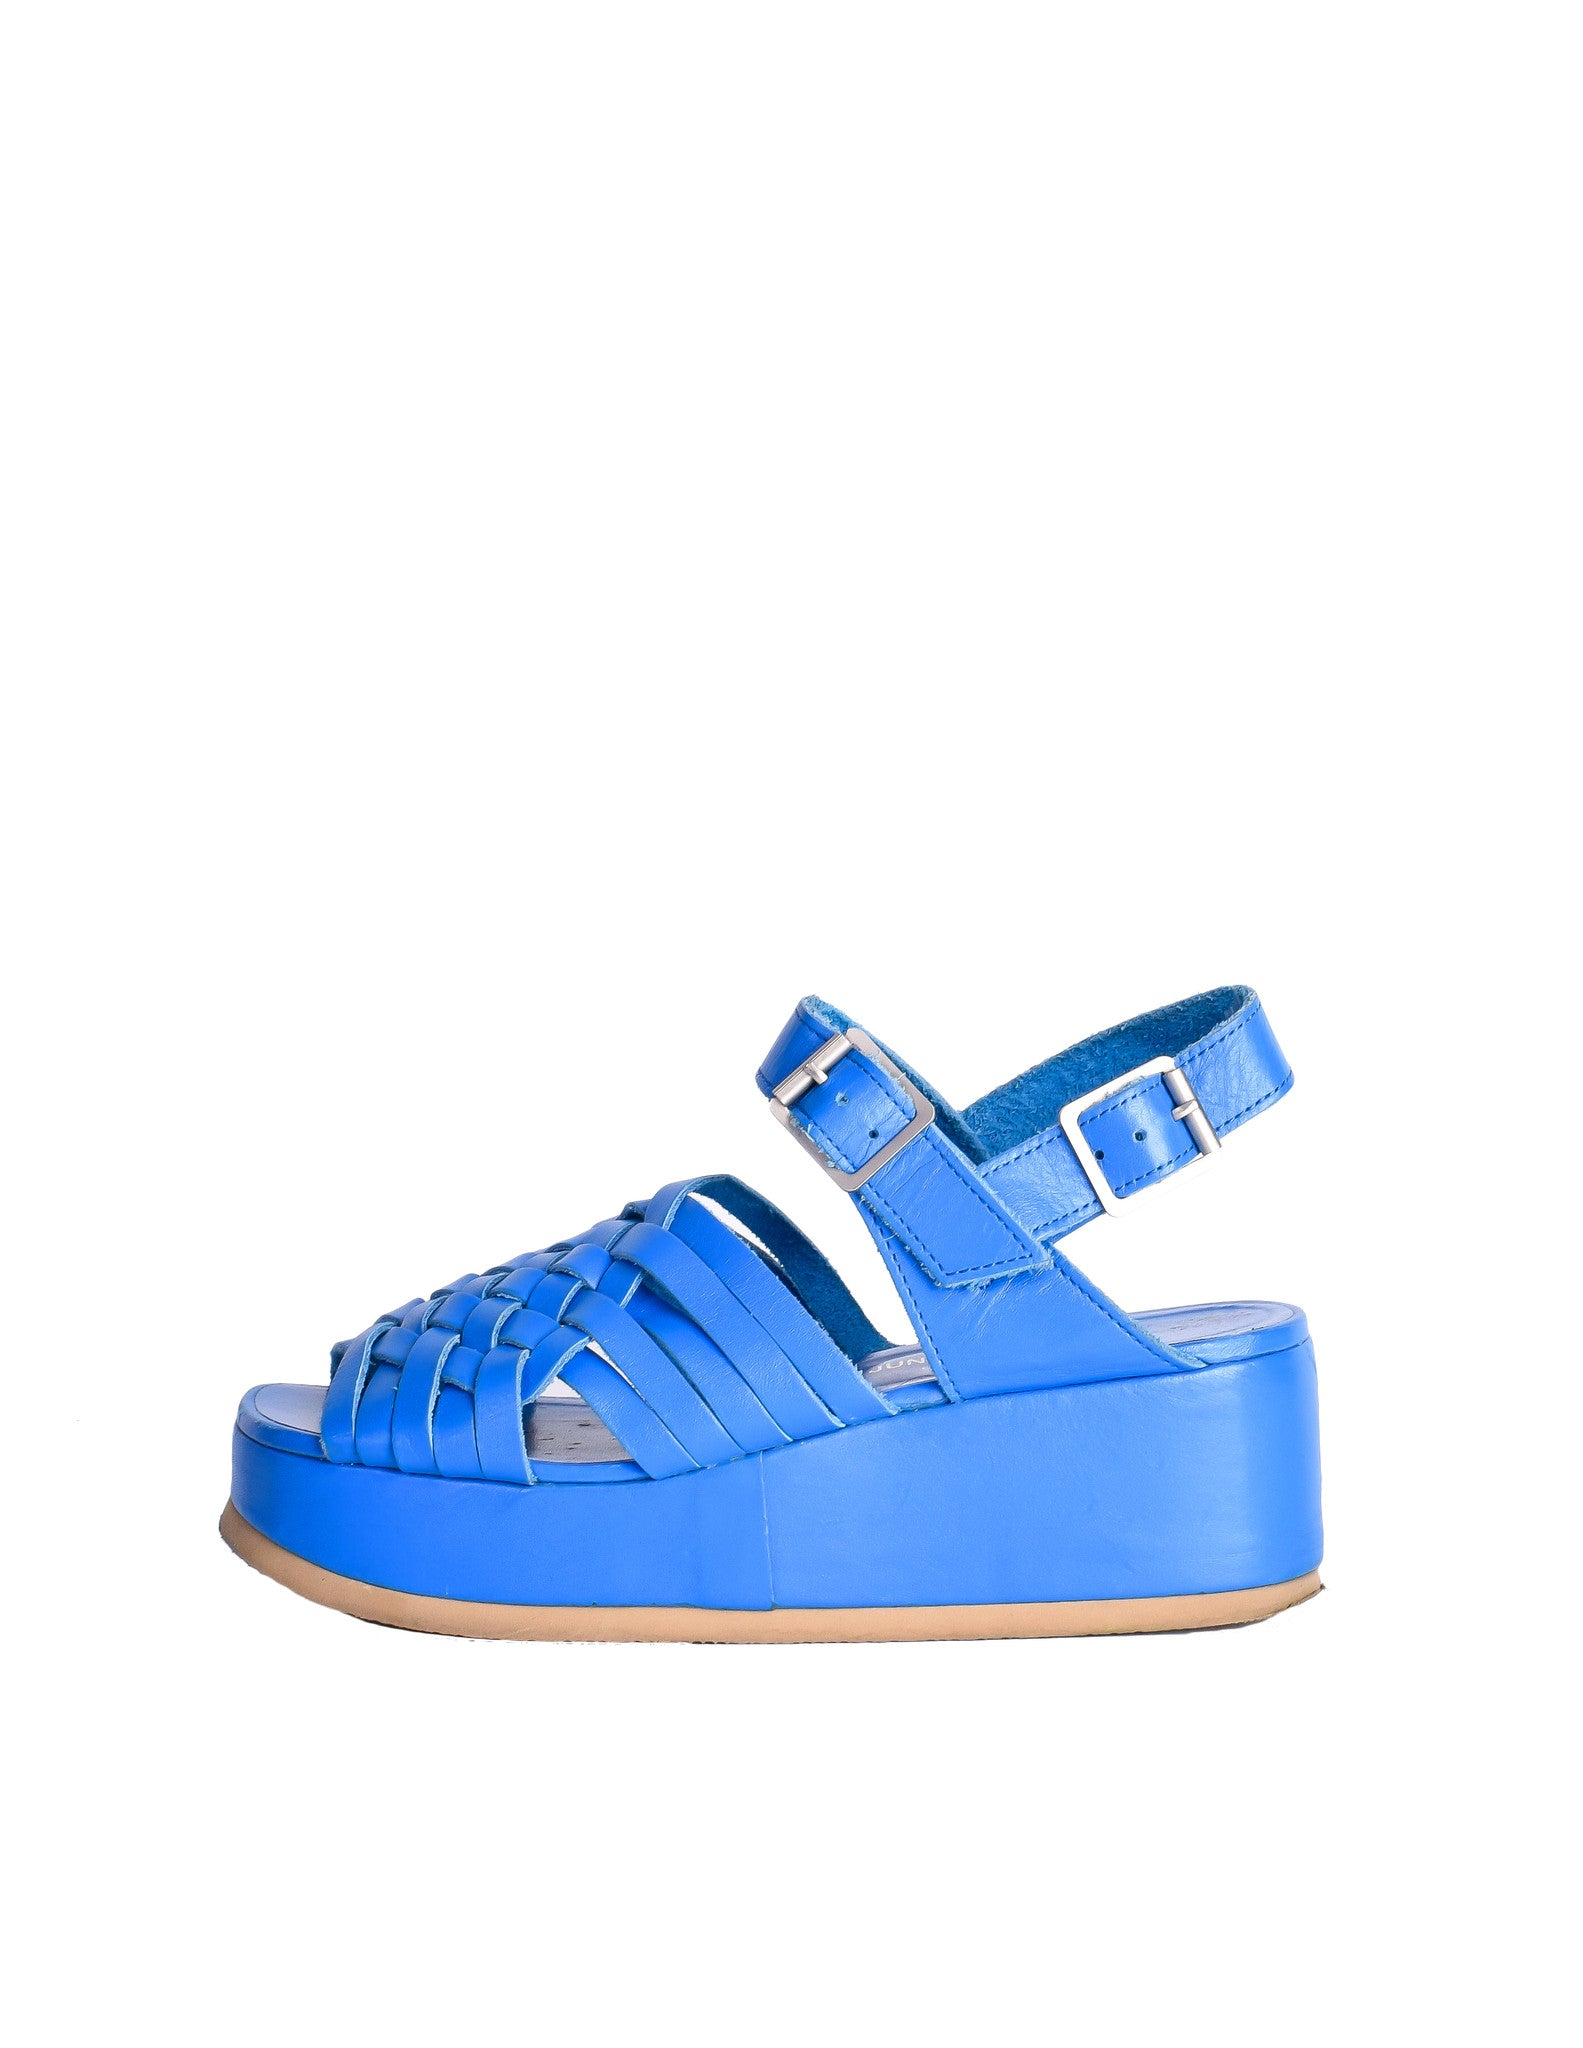 Junya Watanabe Comme des Garçons Vintage Blue Woven Leather Platform Sandals - Amarcord Vintage Fashion  - 1